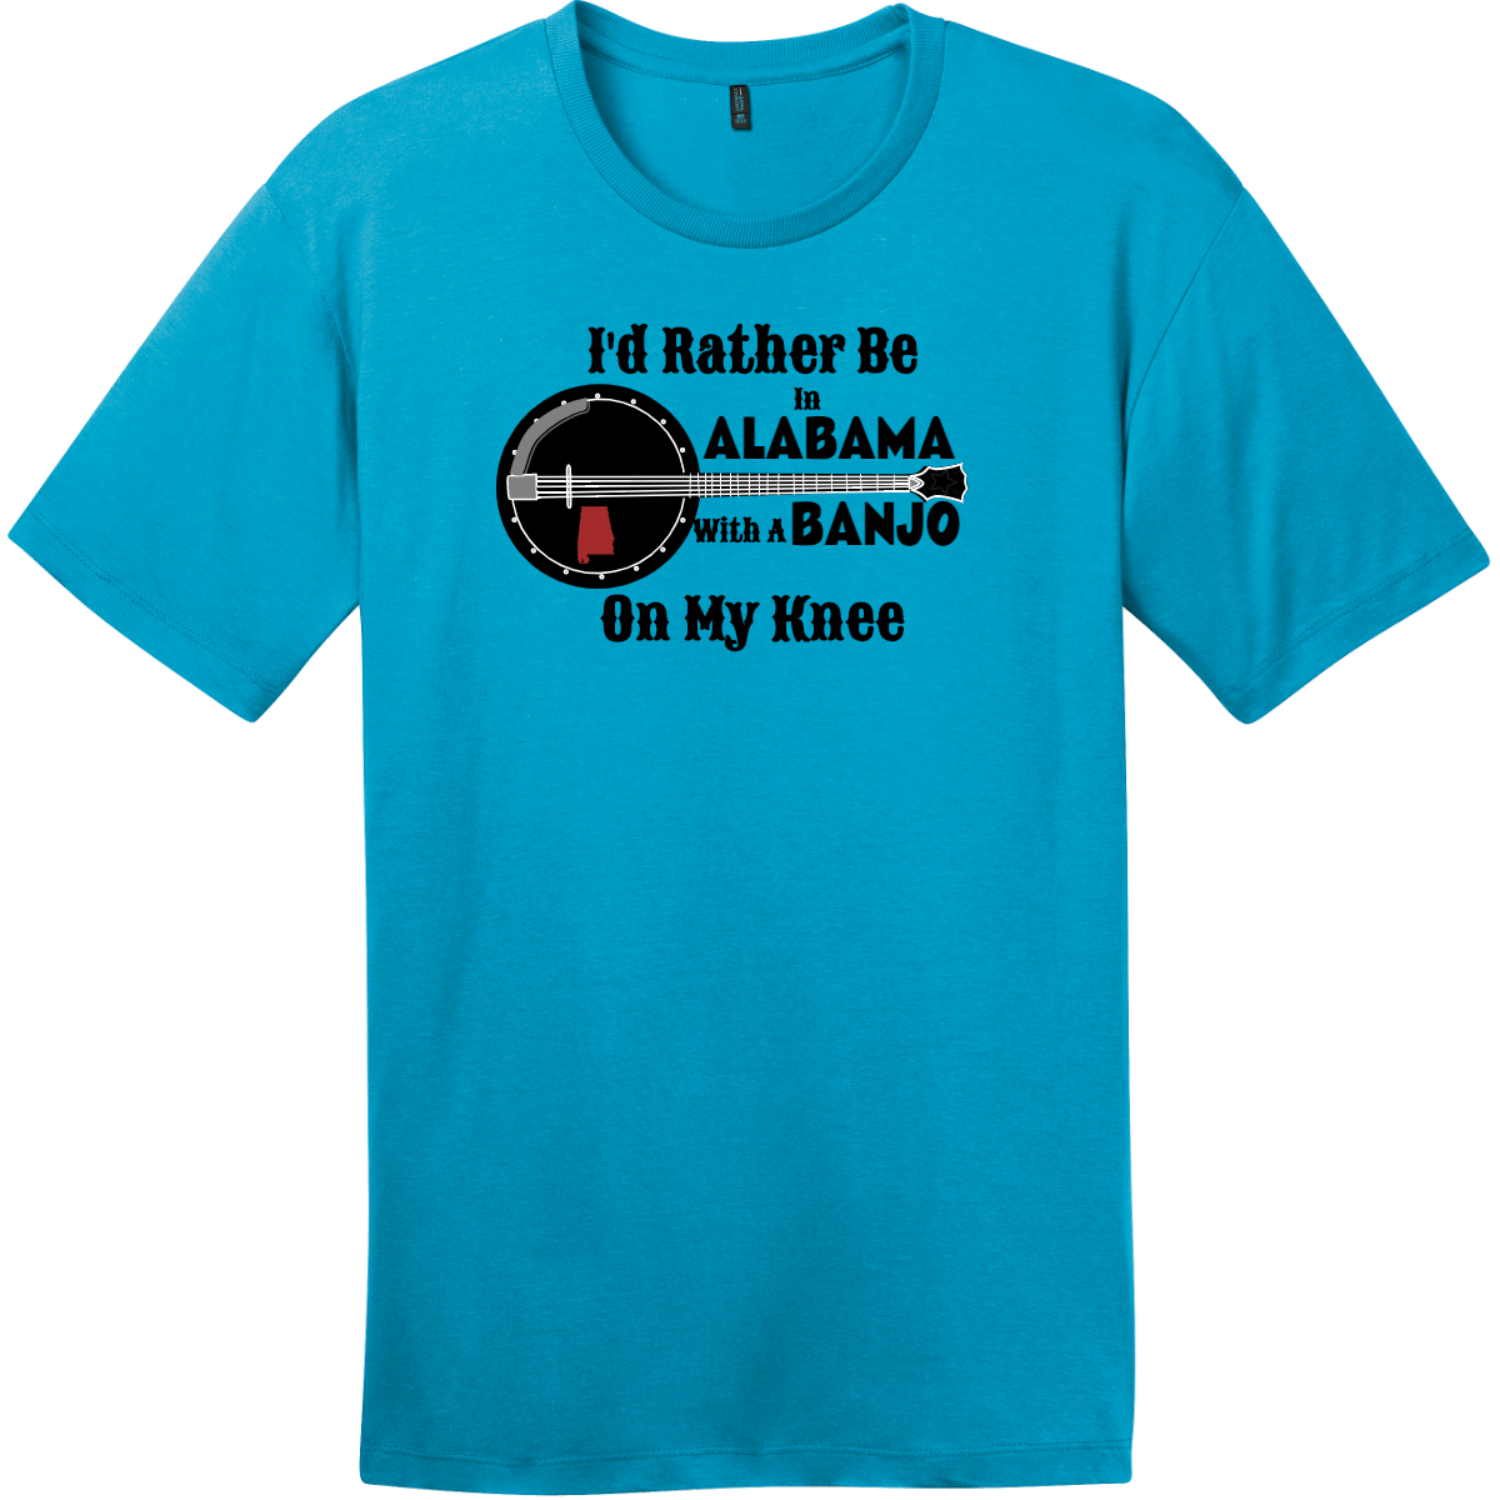 Rather Be In Alabama Banjo T-Shirt Bright Turquoise District Perfect Weight Tee DT104